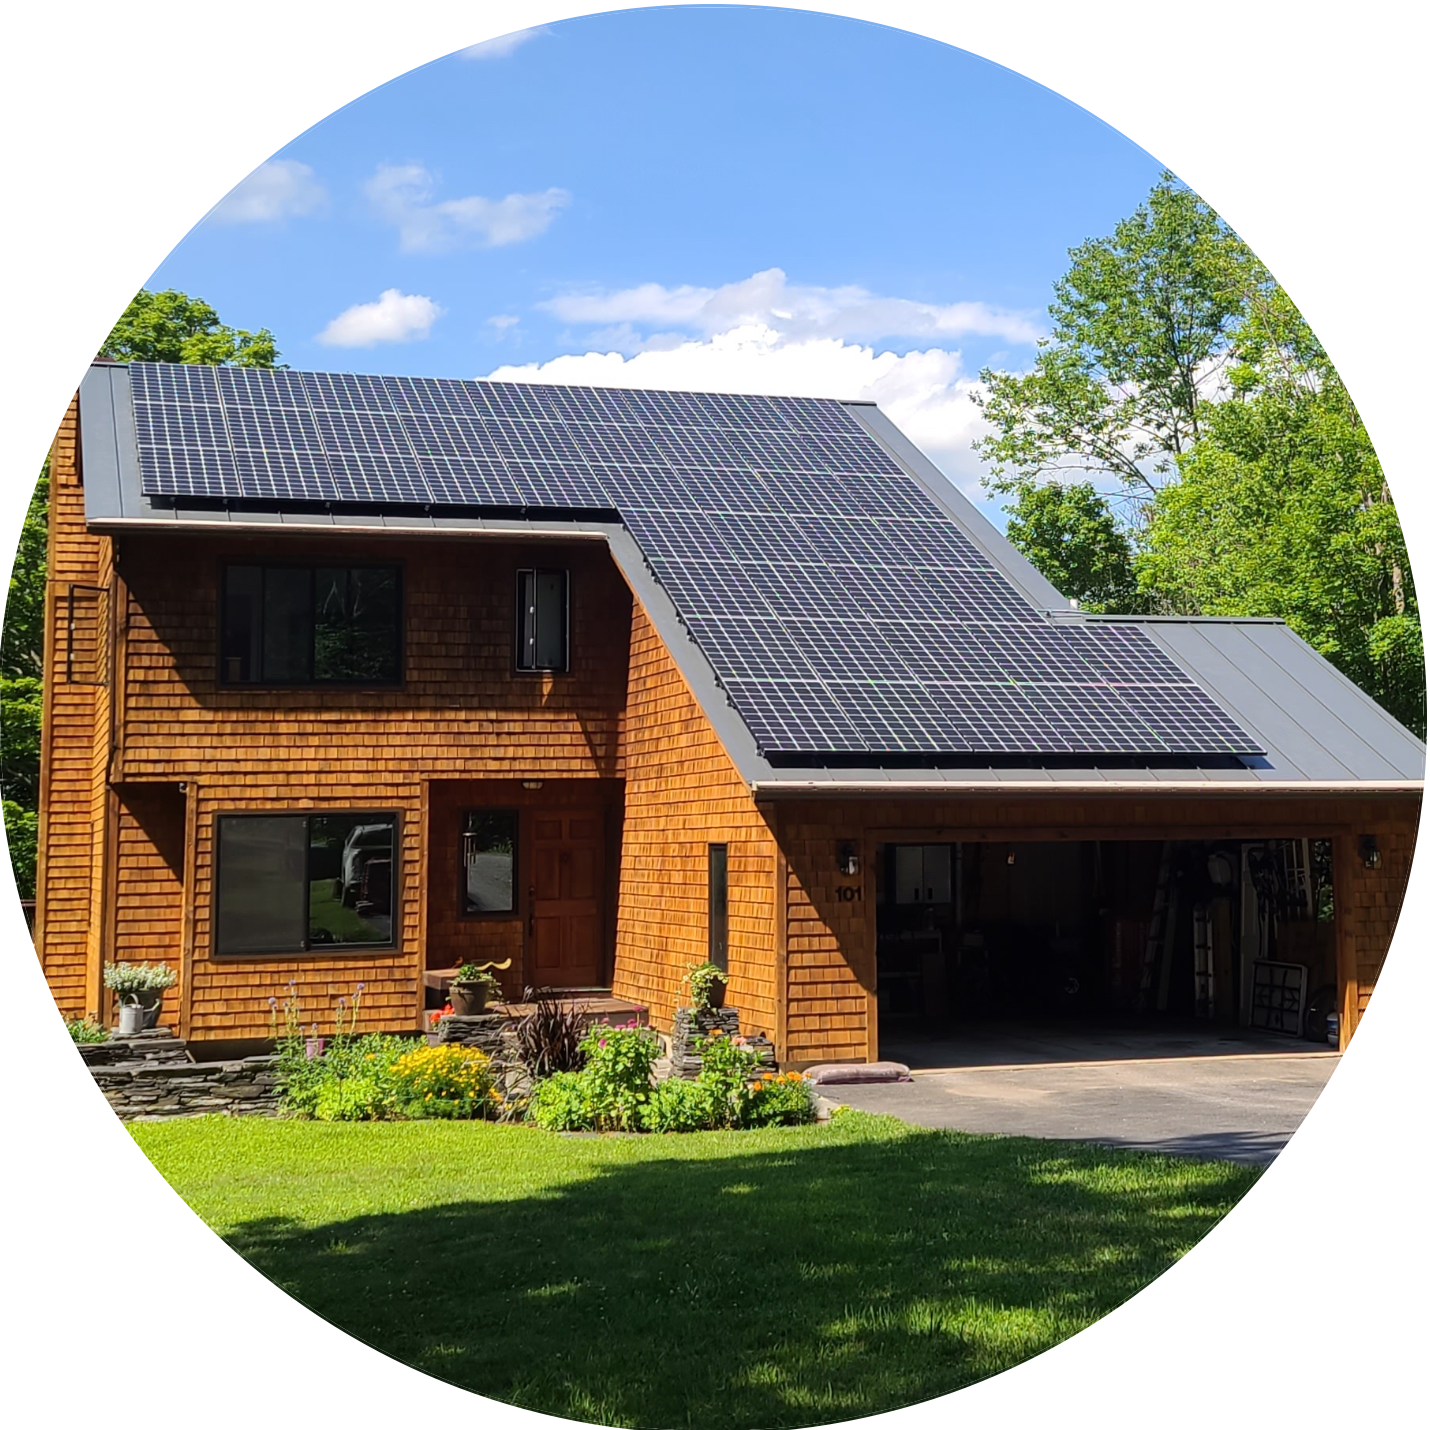 roof-mounted solar panels in Vermont